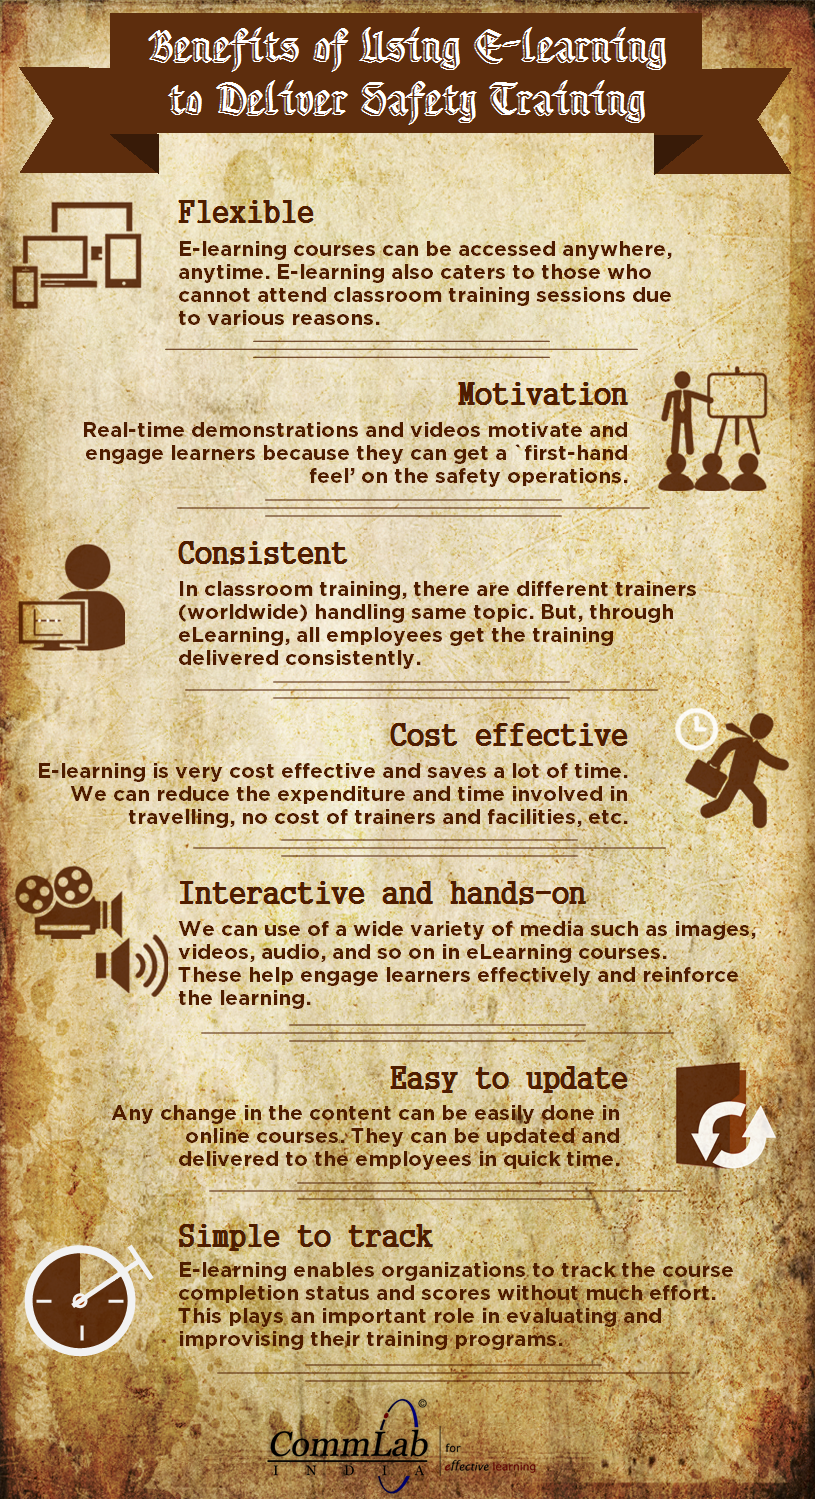 7 Reasons Why E-learning Is Ideal to Impart Safety Training – An Infographic